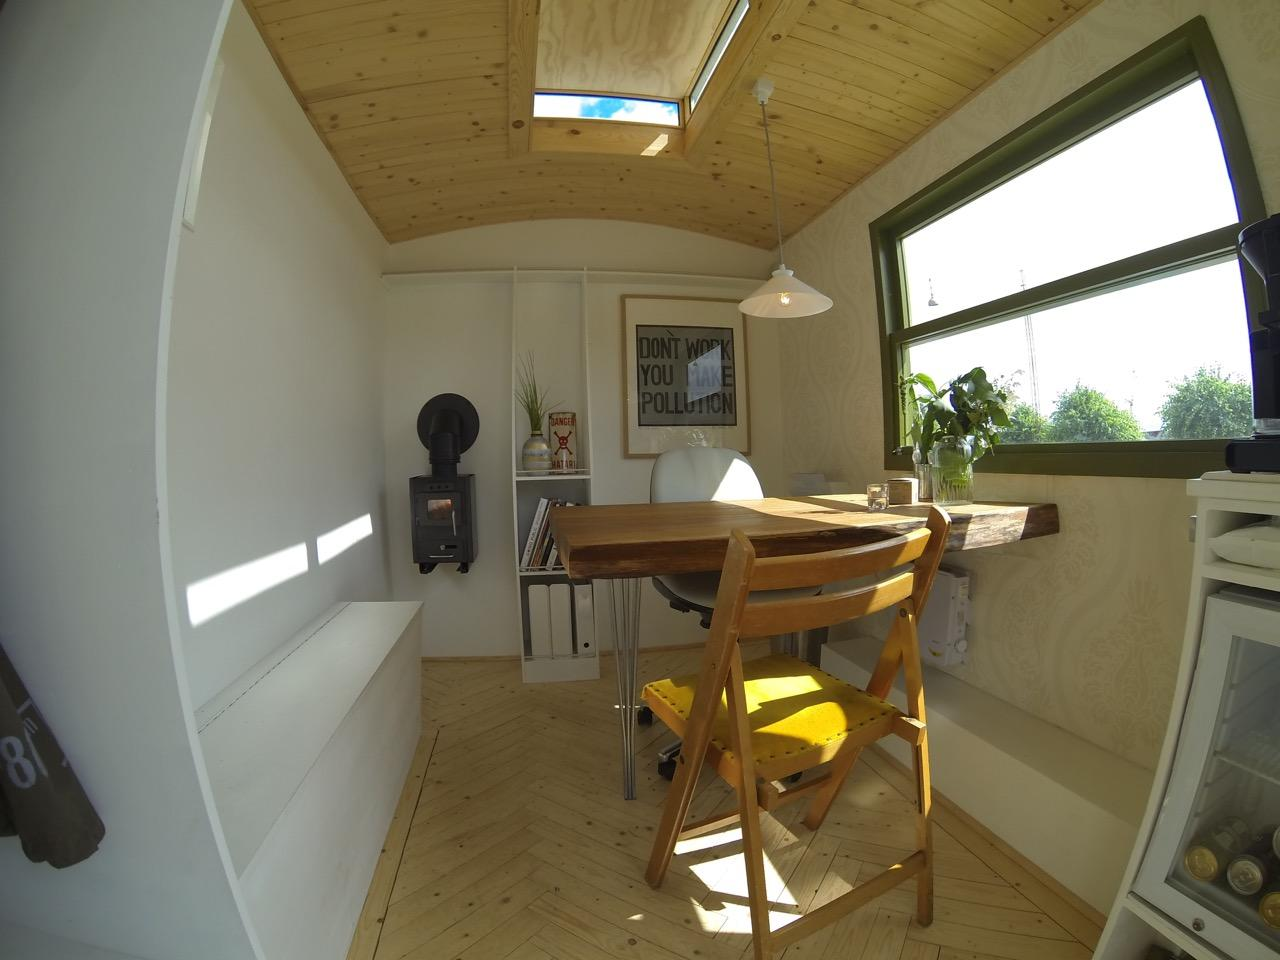 Mobile Tiny Office part-built using reclaimed materials